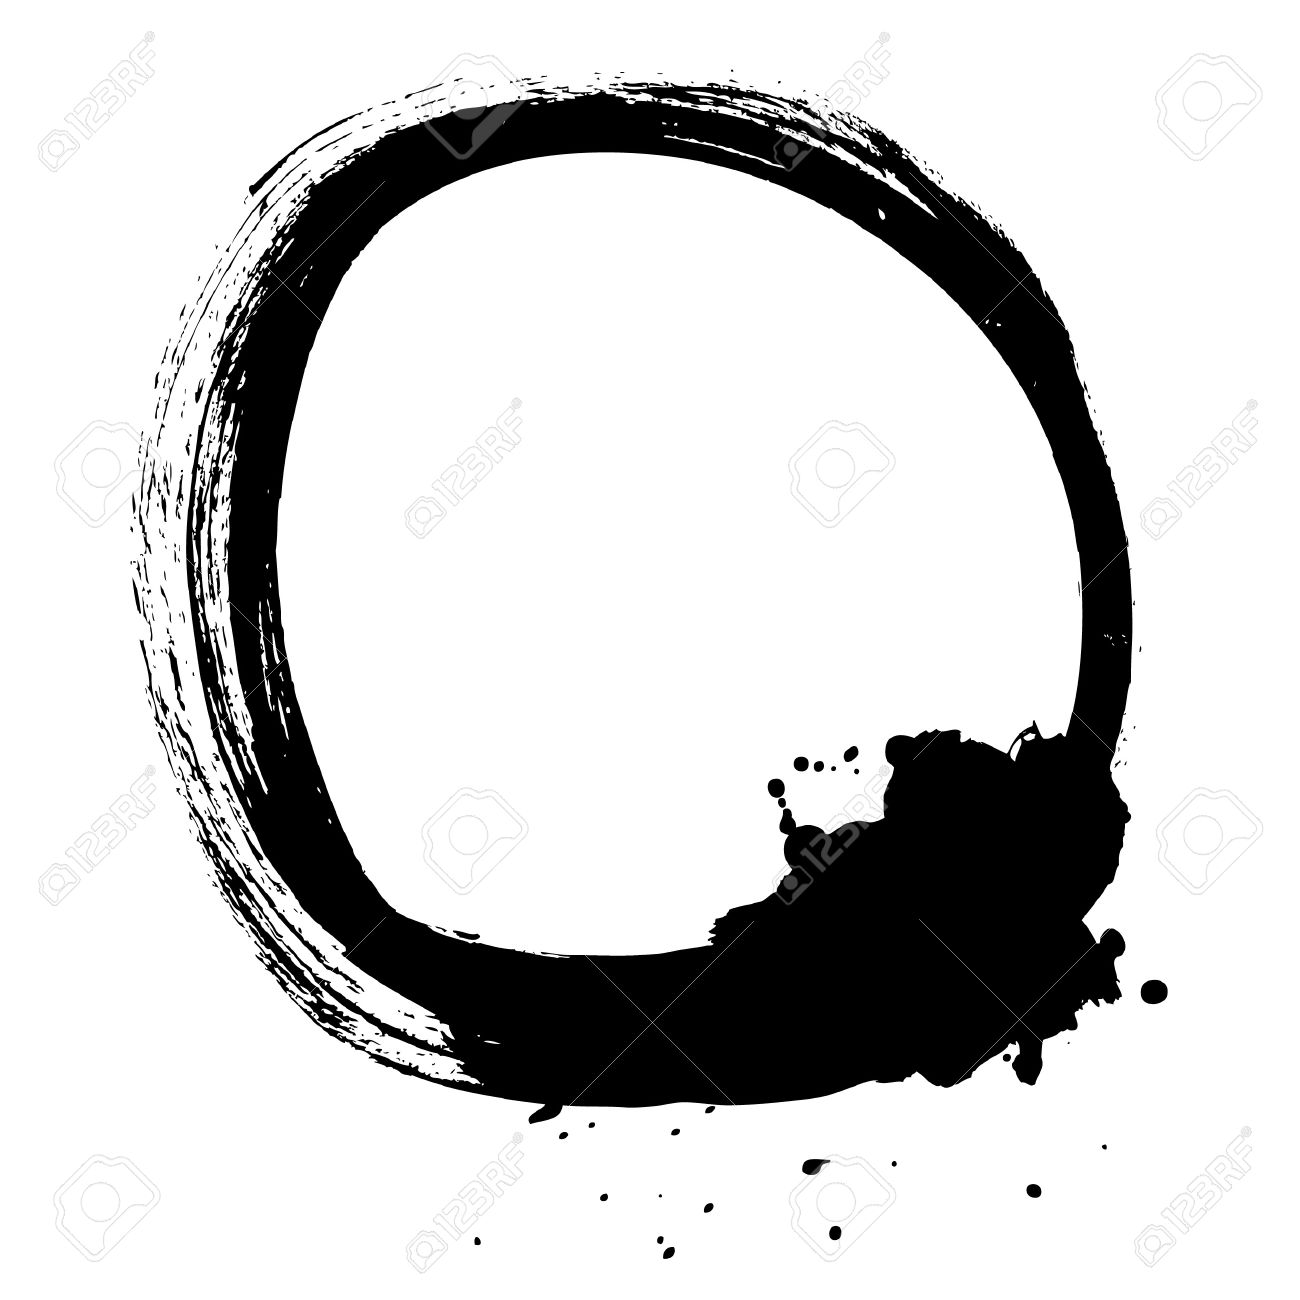 Black brush stroke in the form of a circle Drawing created in ink sketch handmade technique Isolated on white background - 21525421